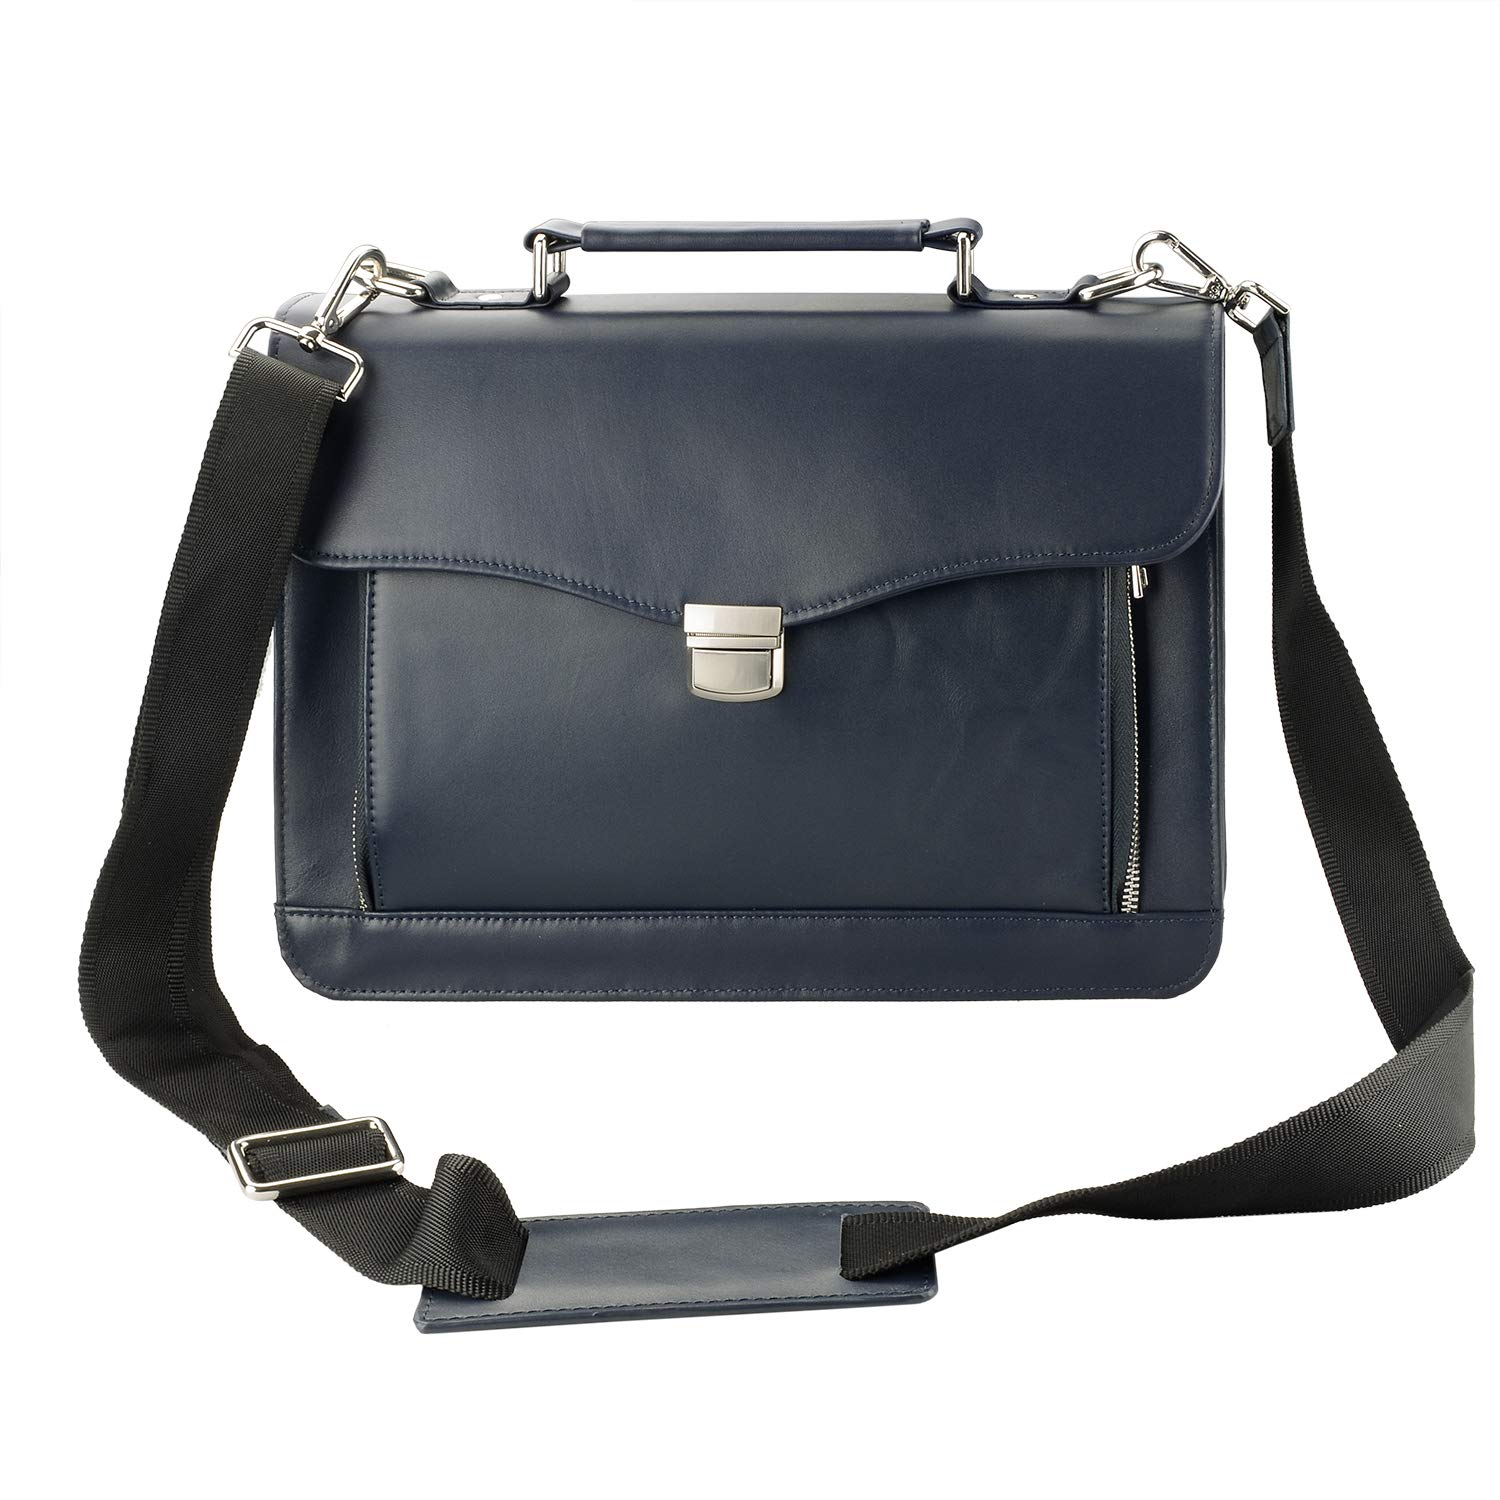 Executive Matte Leather Briefcase Bag with Handle, Strap and Organizer Panel (Dark Blue)